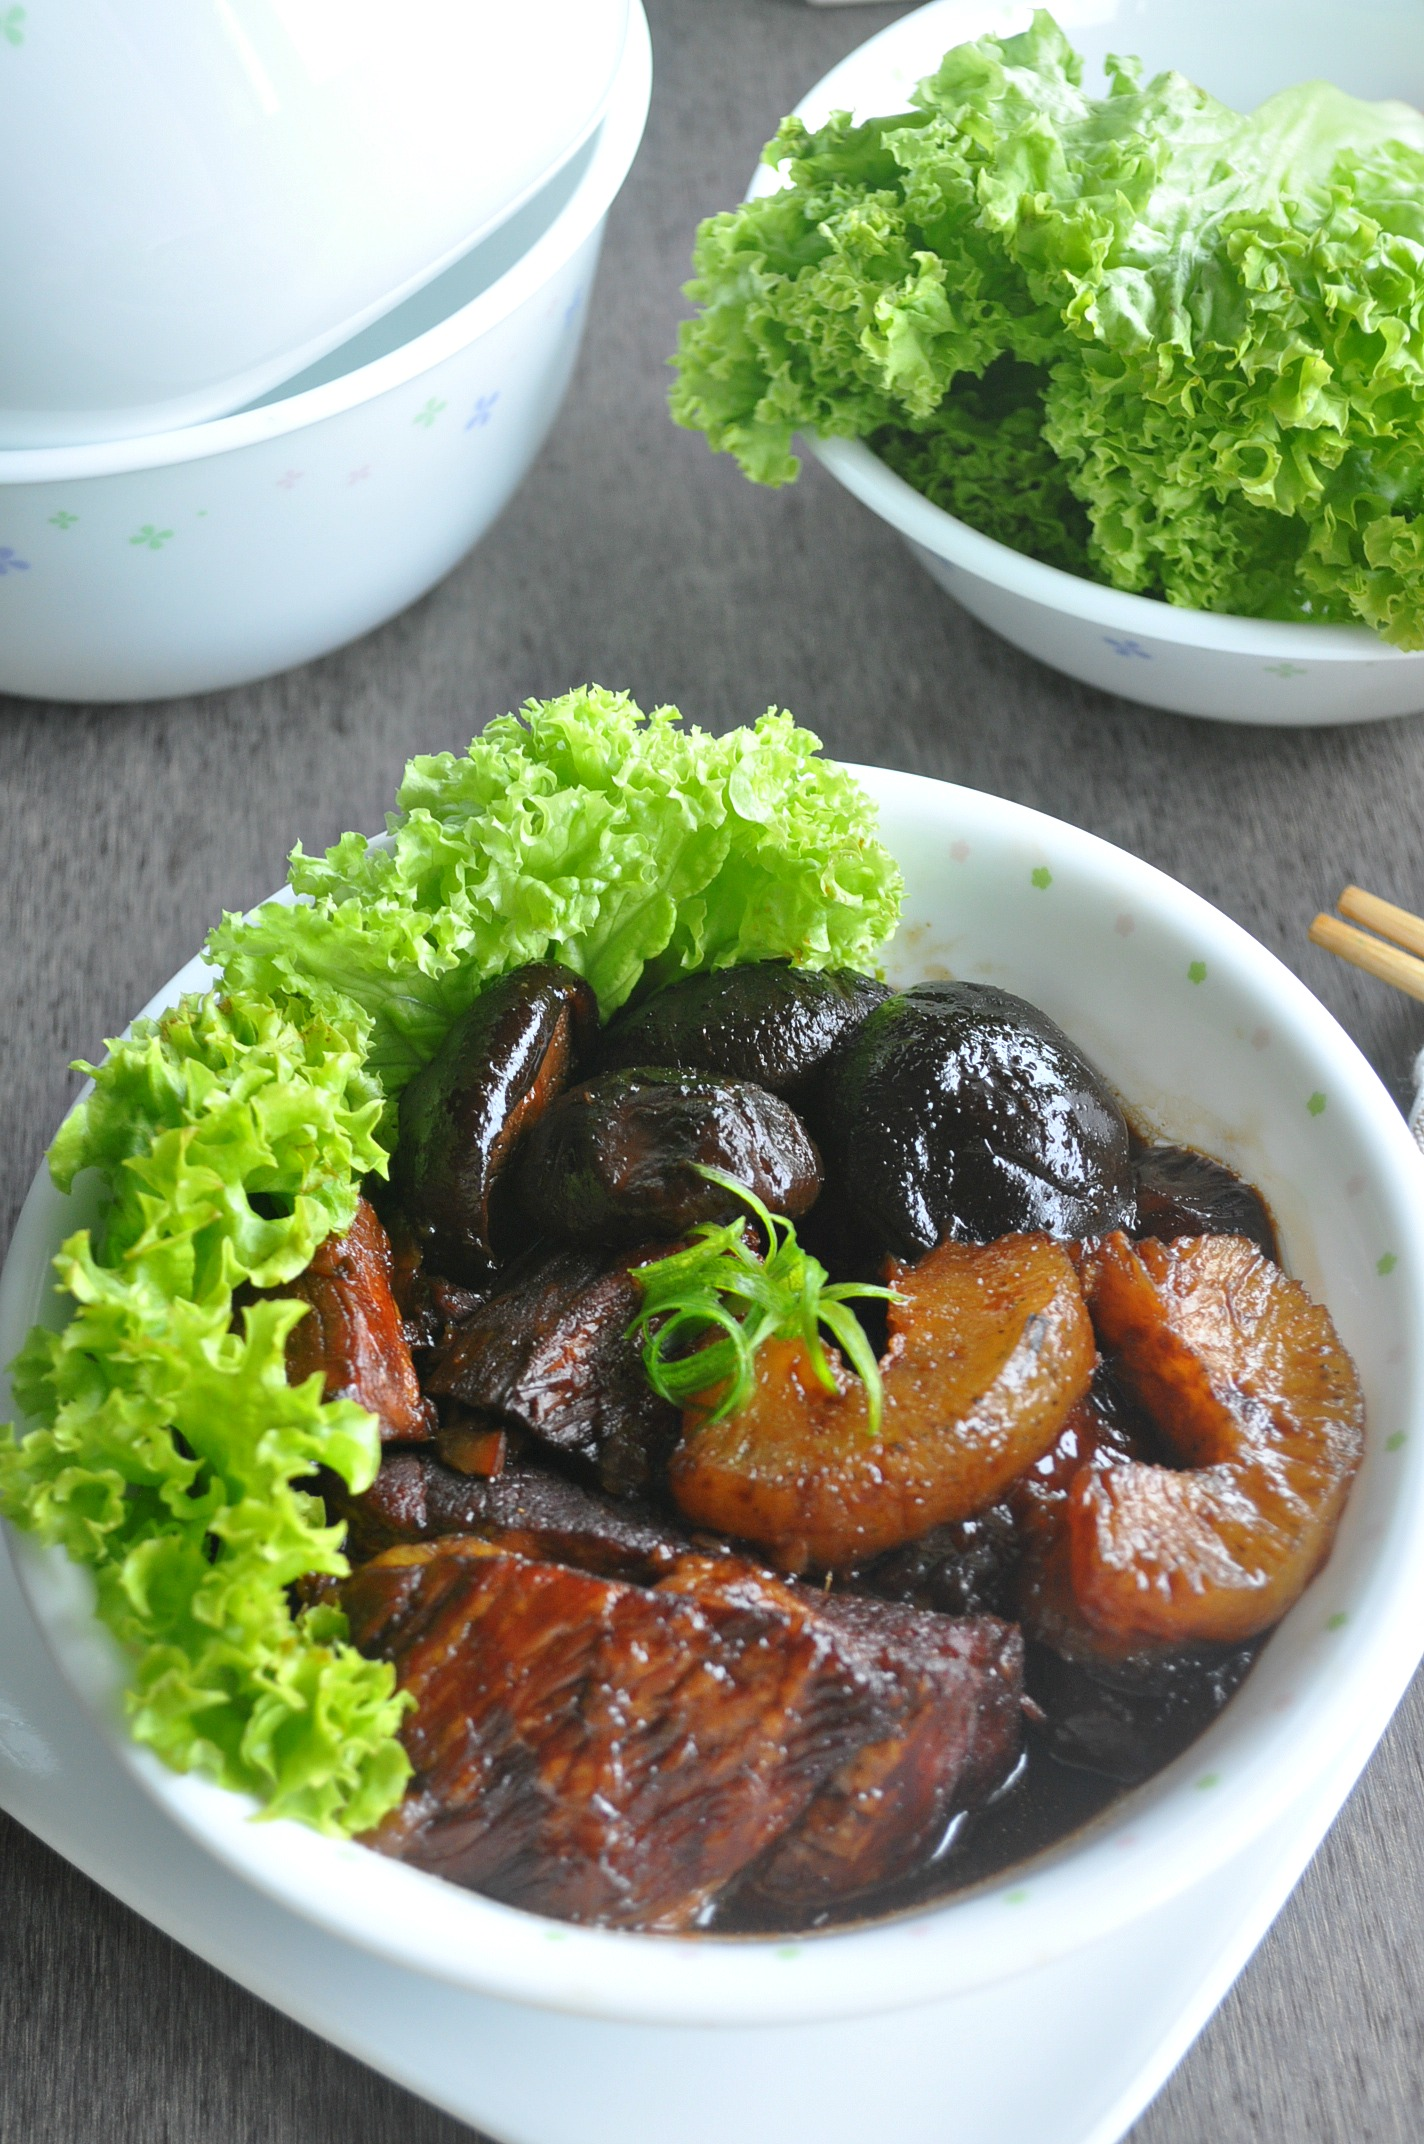 Braised pork with sea cucumber eat what tonight bsc2 forumfinder Choice Image